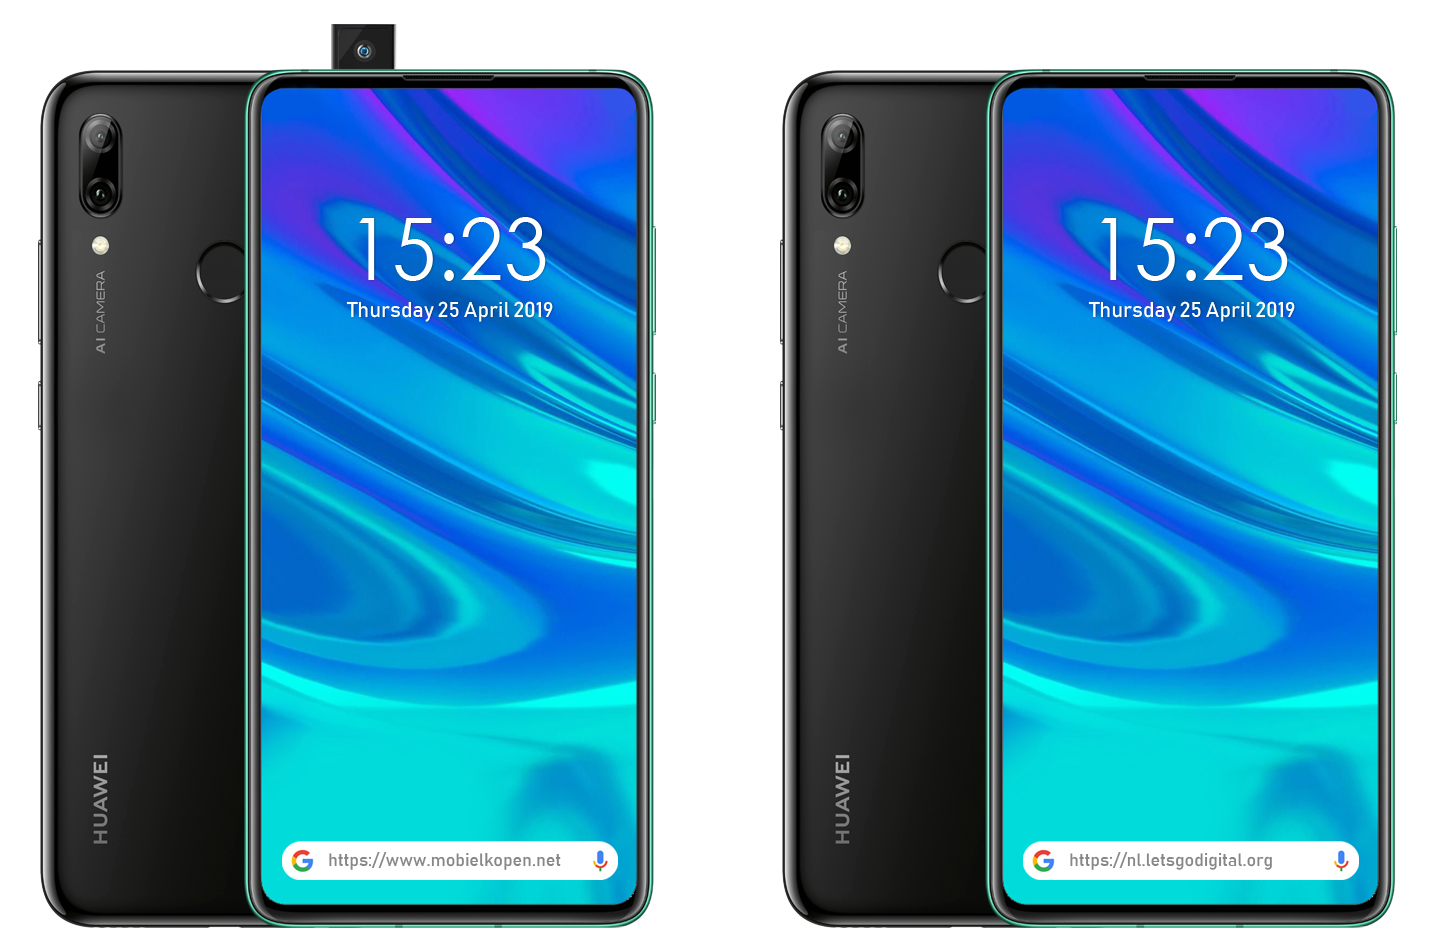 Huawei Smartphone Huawei Gears Up To Launch Its First Smartphone With Pop Up Camera